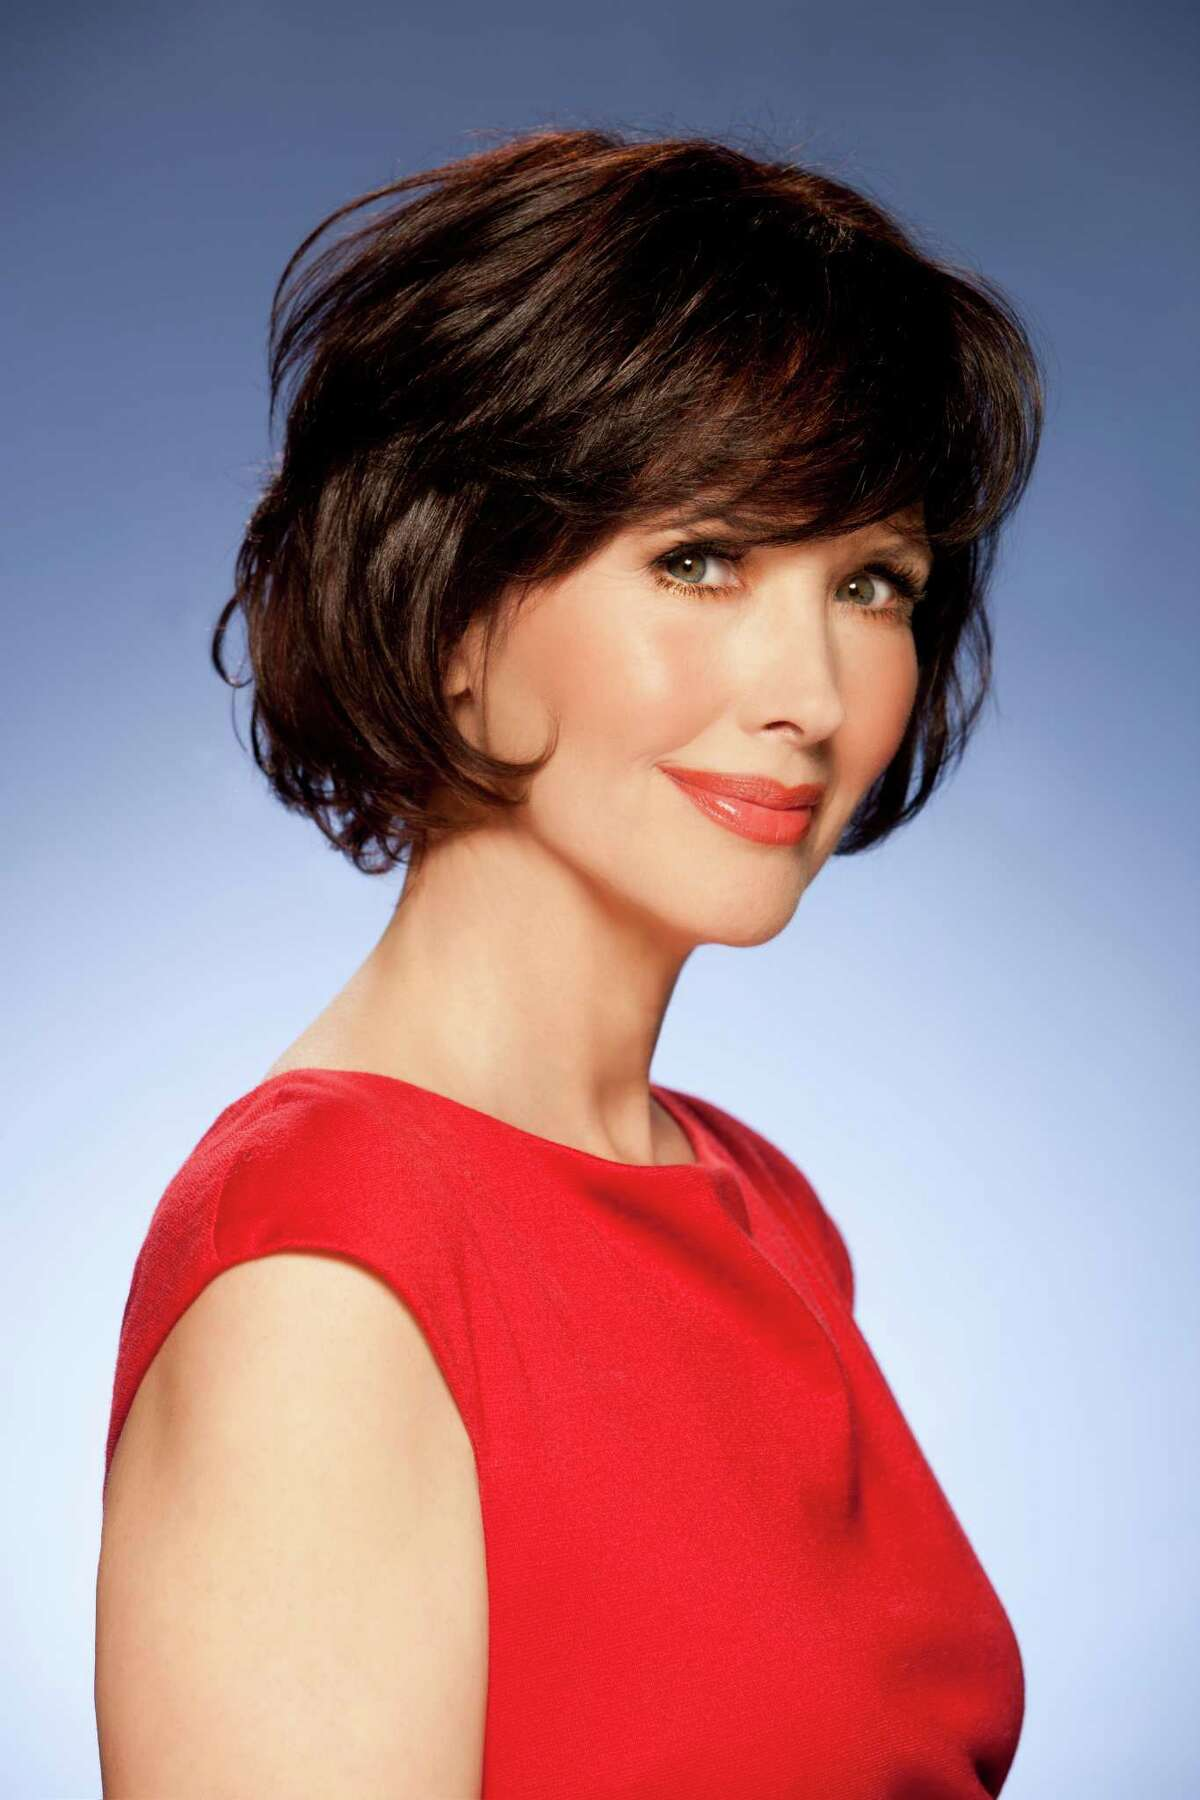 Actress Janine Turner (?General Hospital,? ?Northern Exposure?) is bringing her radio show to Houston?s KPRC 950AM beginning March 18. Her show will air from 6 pm to 8pm and cover current news and entertainment topics.